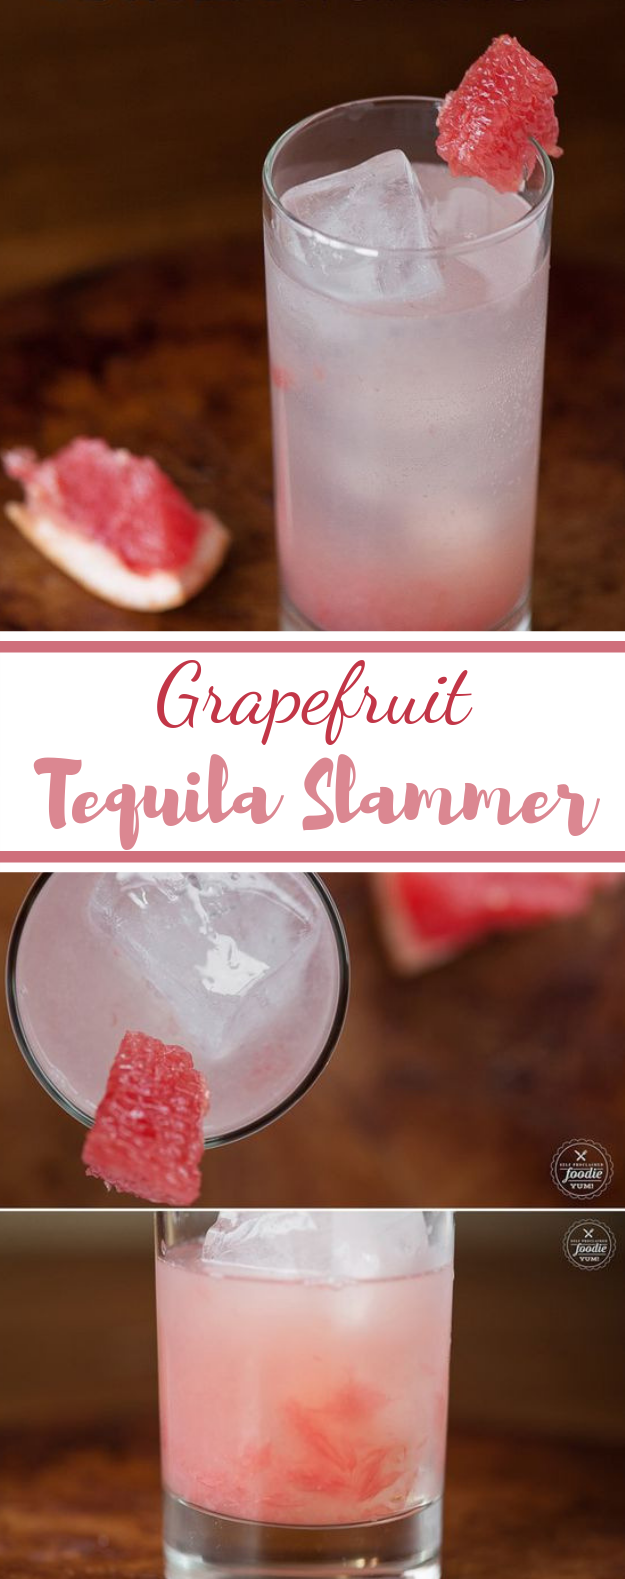 Grapefruit Tequila Slammer #cocktail #drinks